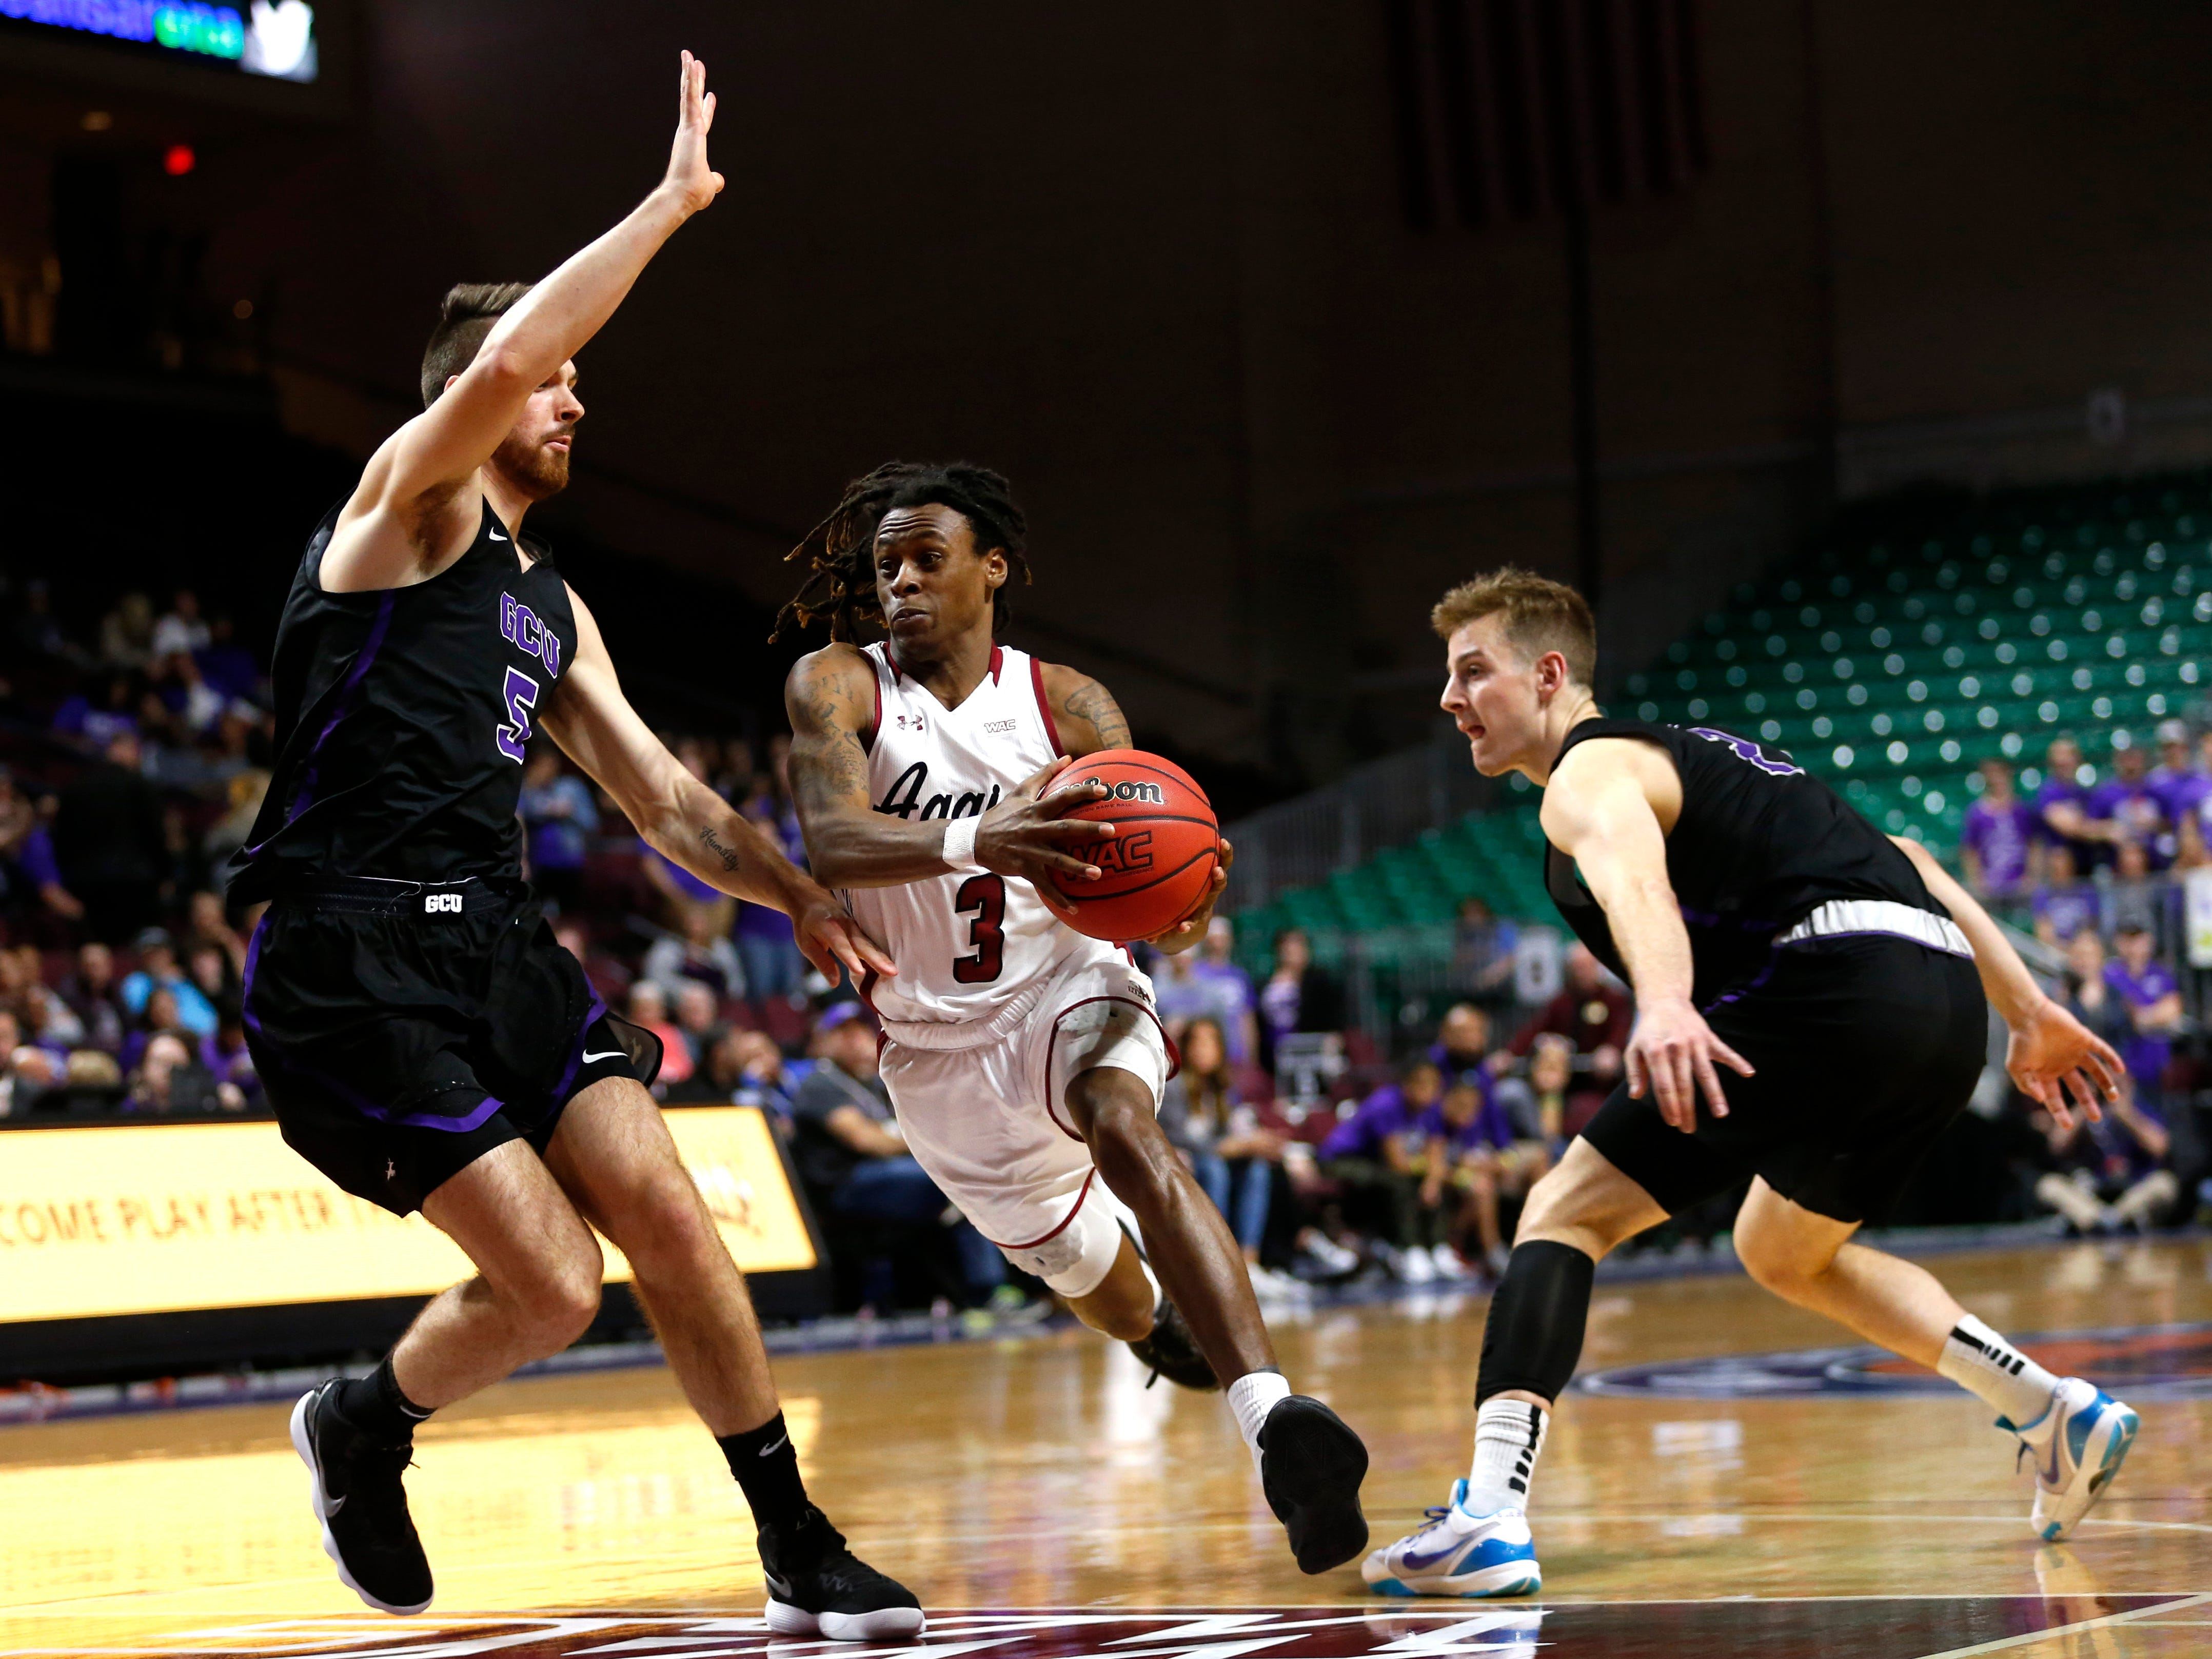 New Mexico State guard Terrell Brown (3) drives by Grand Canyon's Matt Jackson (5) and Trey Drechsel (2) during an NCAA college basketball game for the Western Athletic Conference men's tournament championship Saturday, March 16, 2019, in Las Vegas. New Mexico State won 89-57.